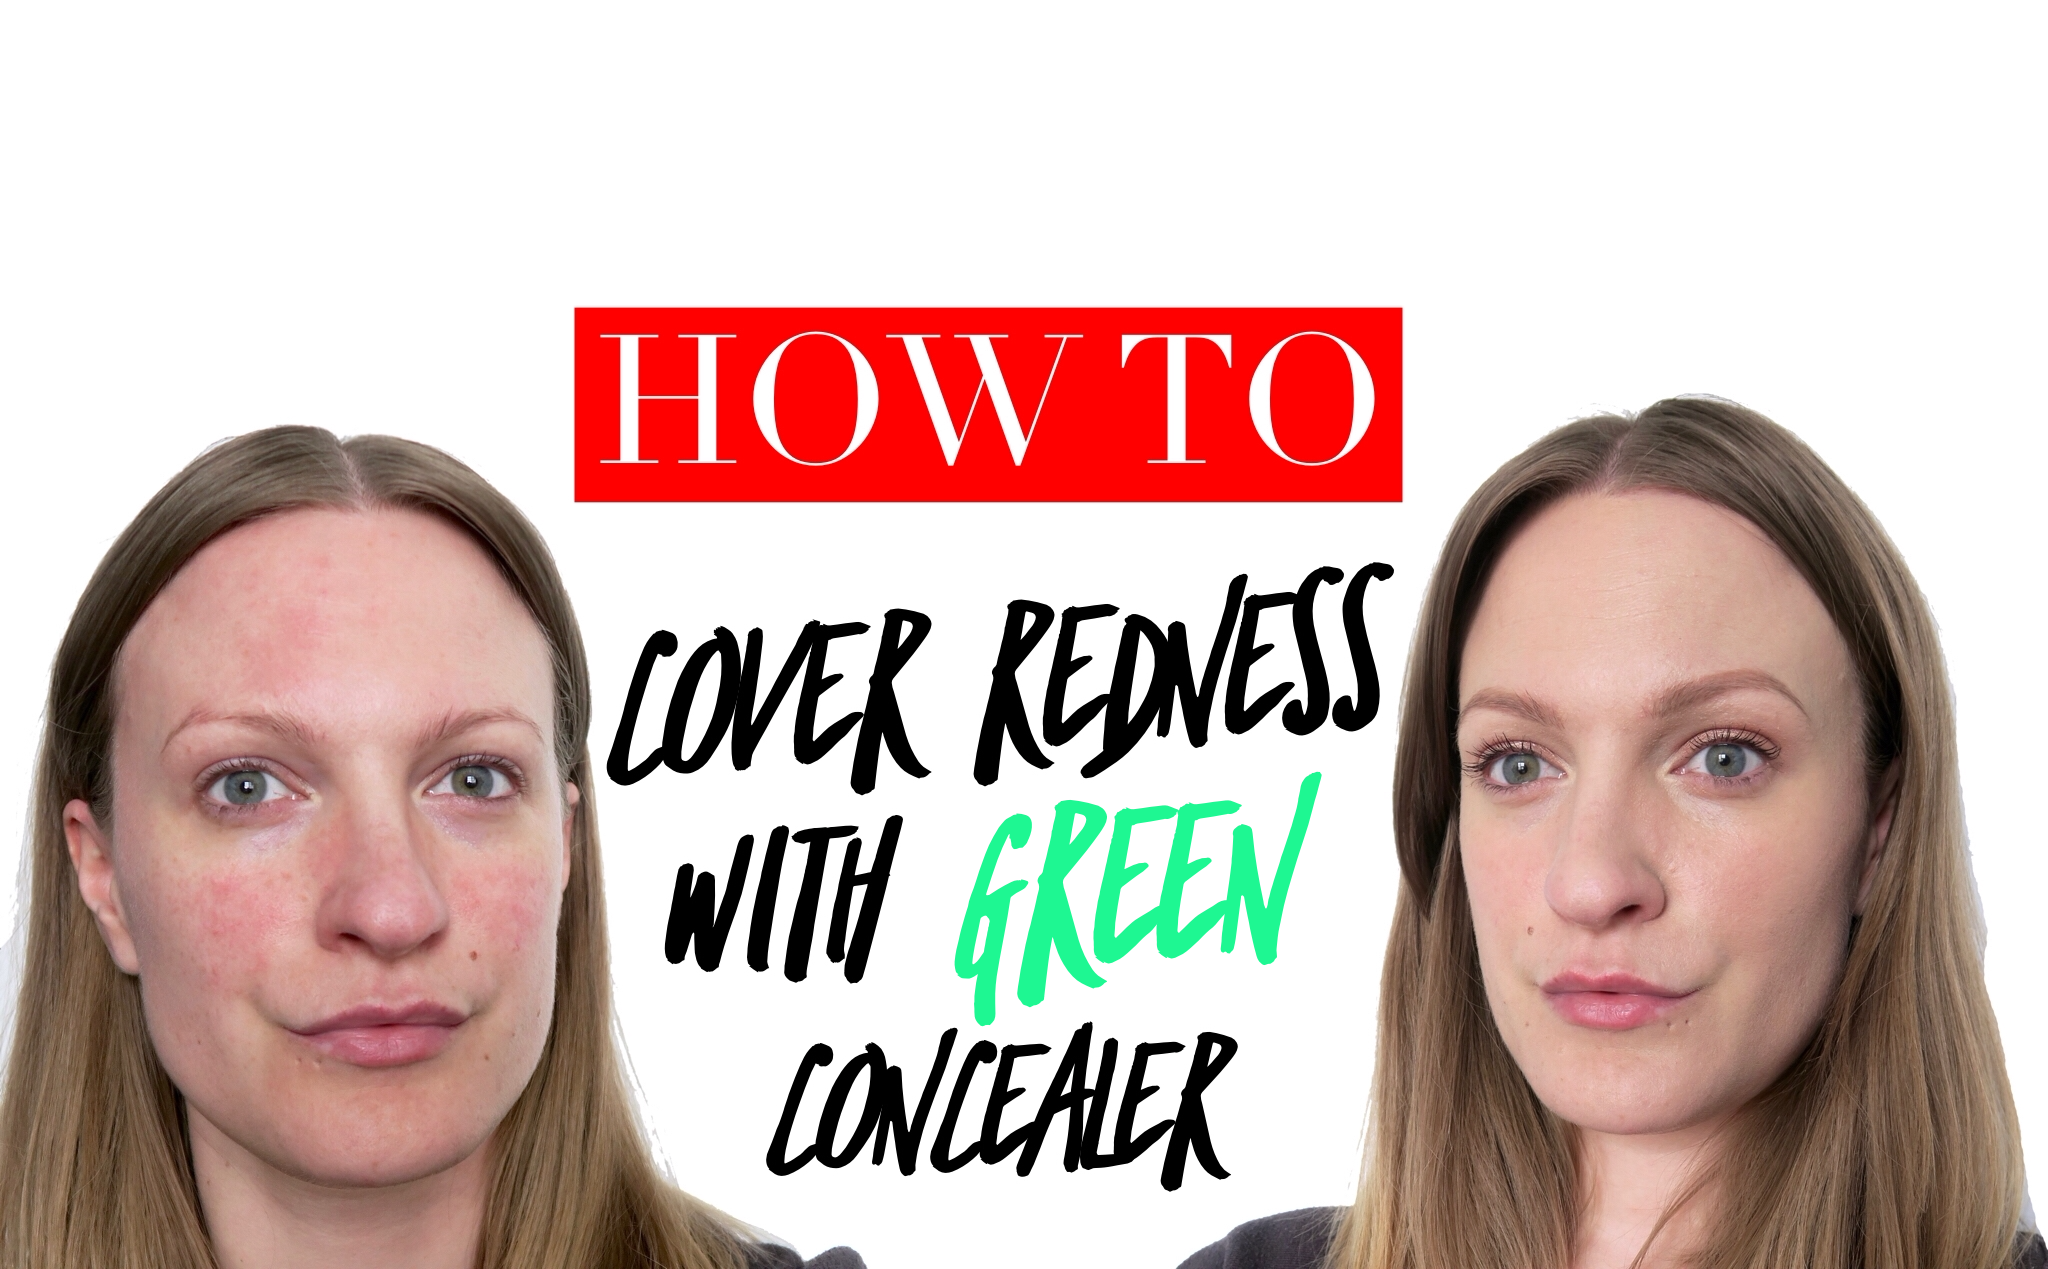 How to cover redness with green concealer: a tutorial to help you cover your rosacea/facial redness